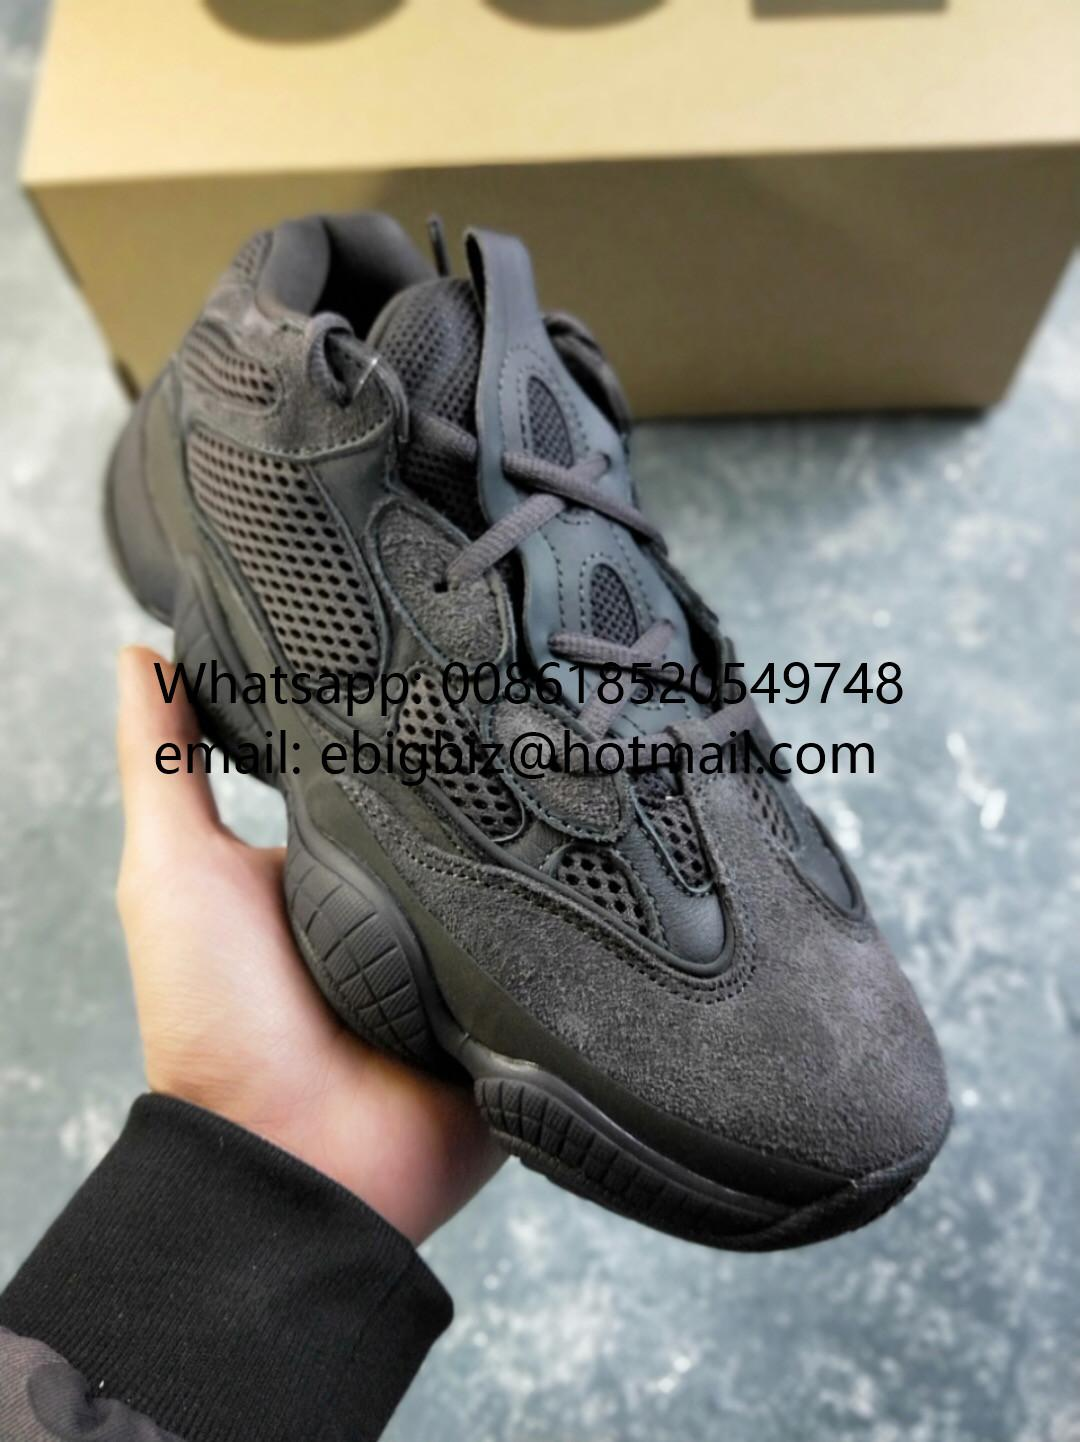 timeless design 8be4a 7cd9a Cheap Adidas Yeezy 500 shoes for men discount Yeezy 500 ...